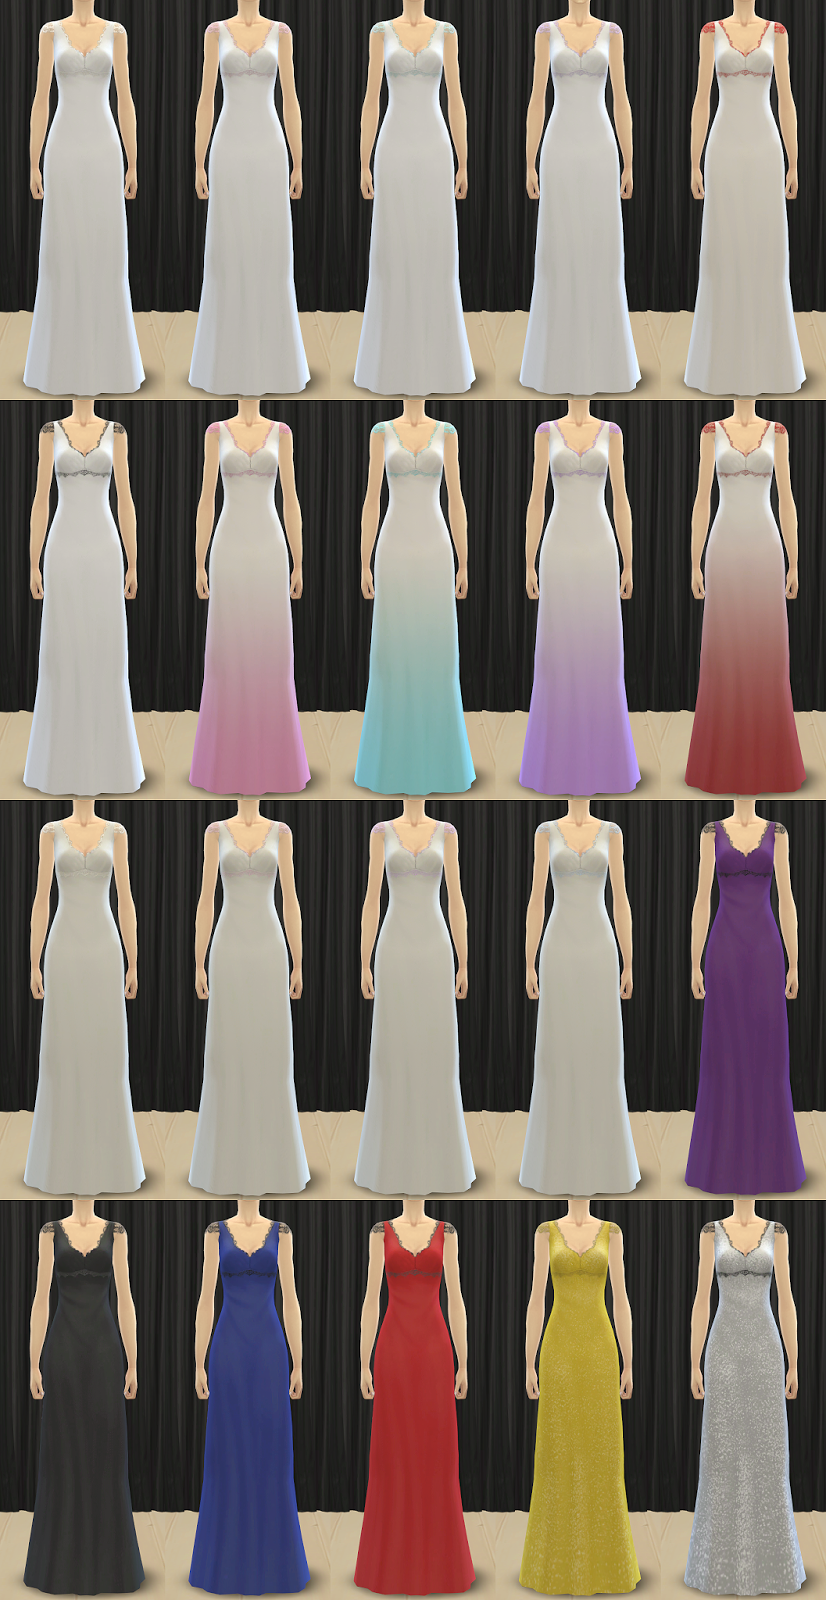 TS3 to TS4 - Queen of Lace Wedding Dress for Teen - Elder Females by Pickypikachu